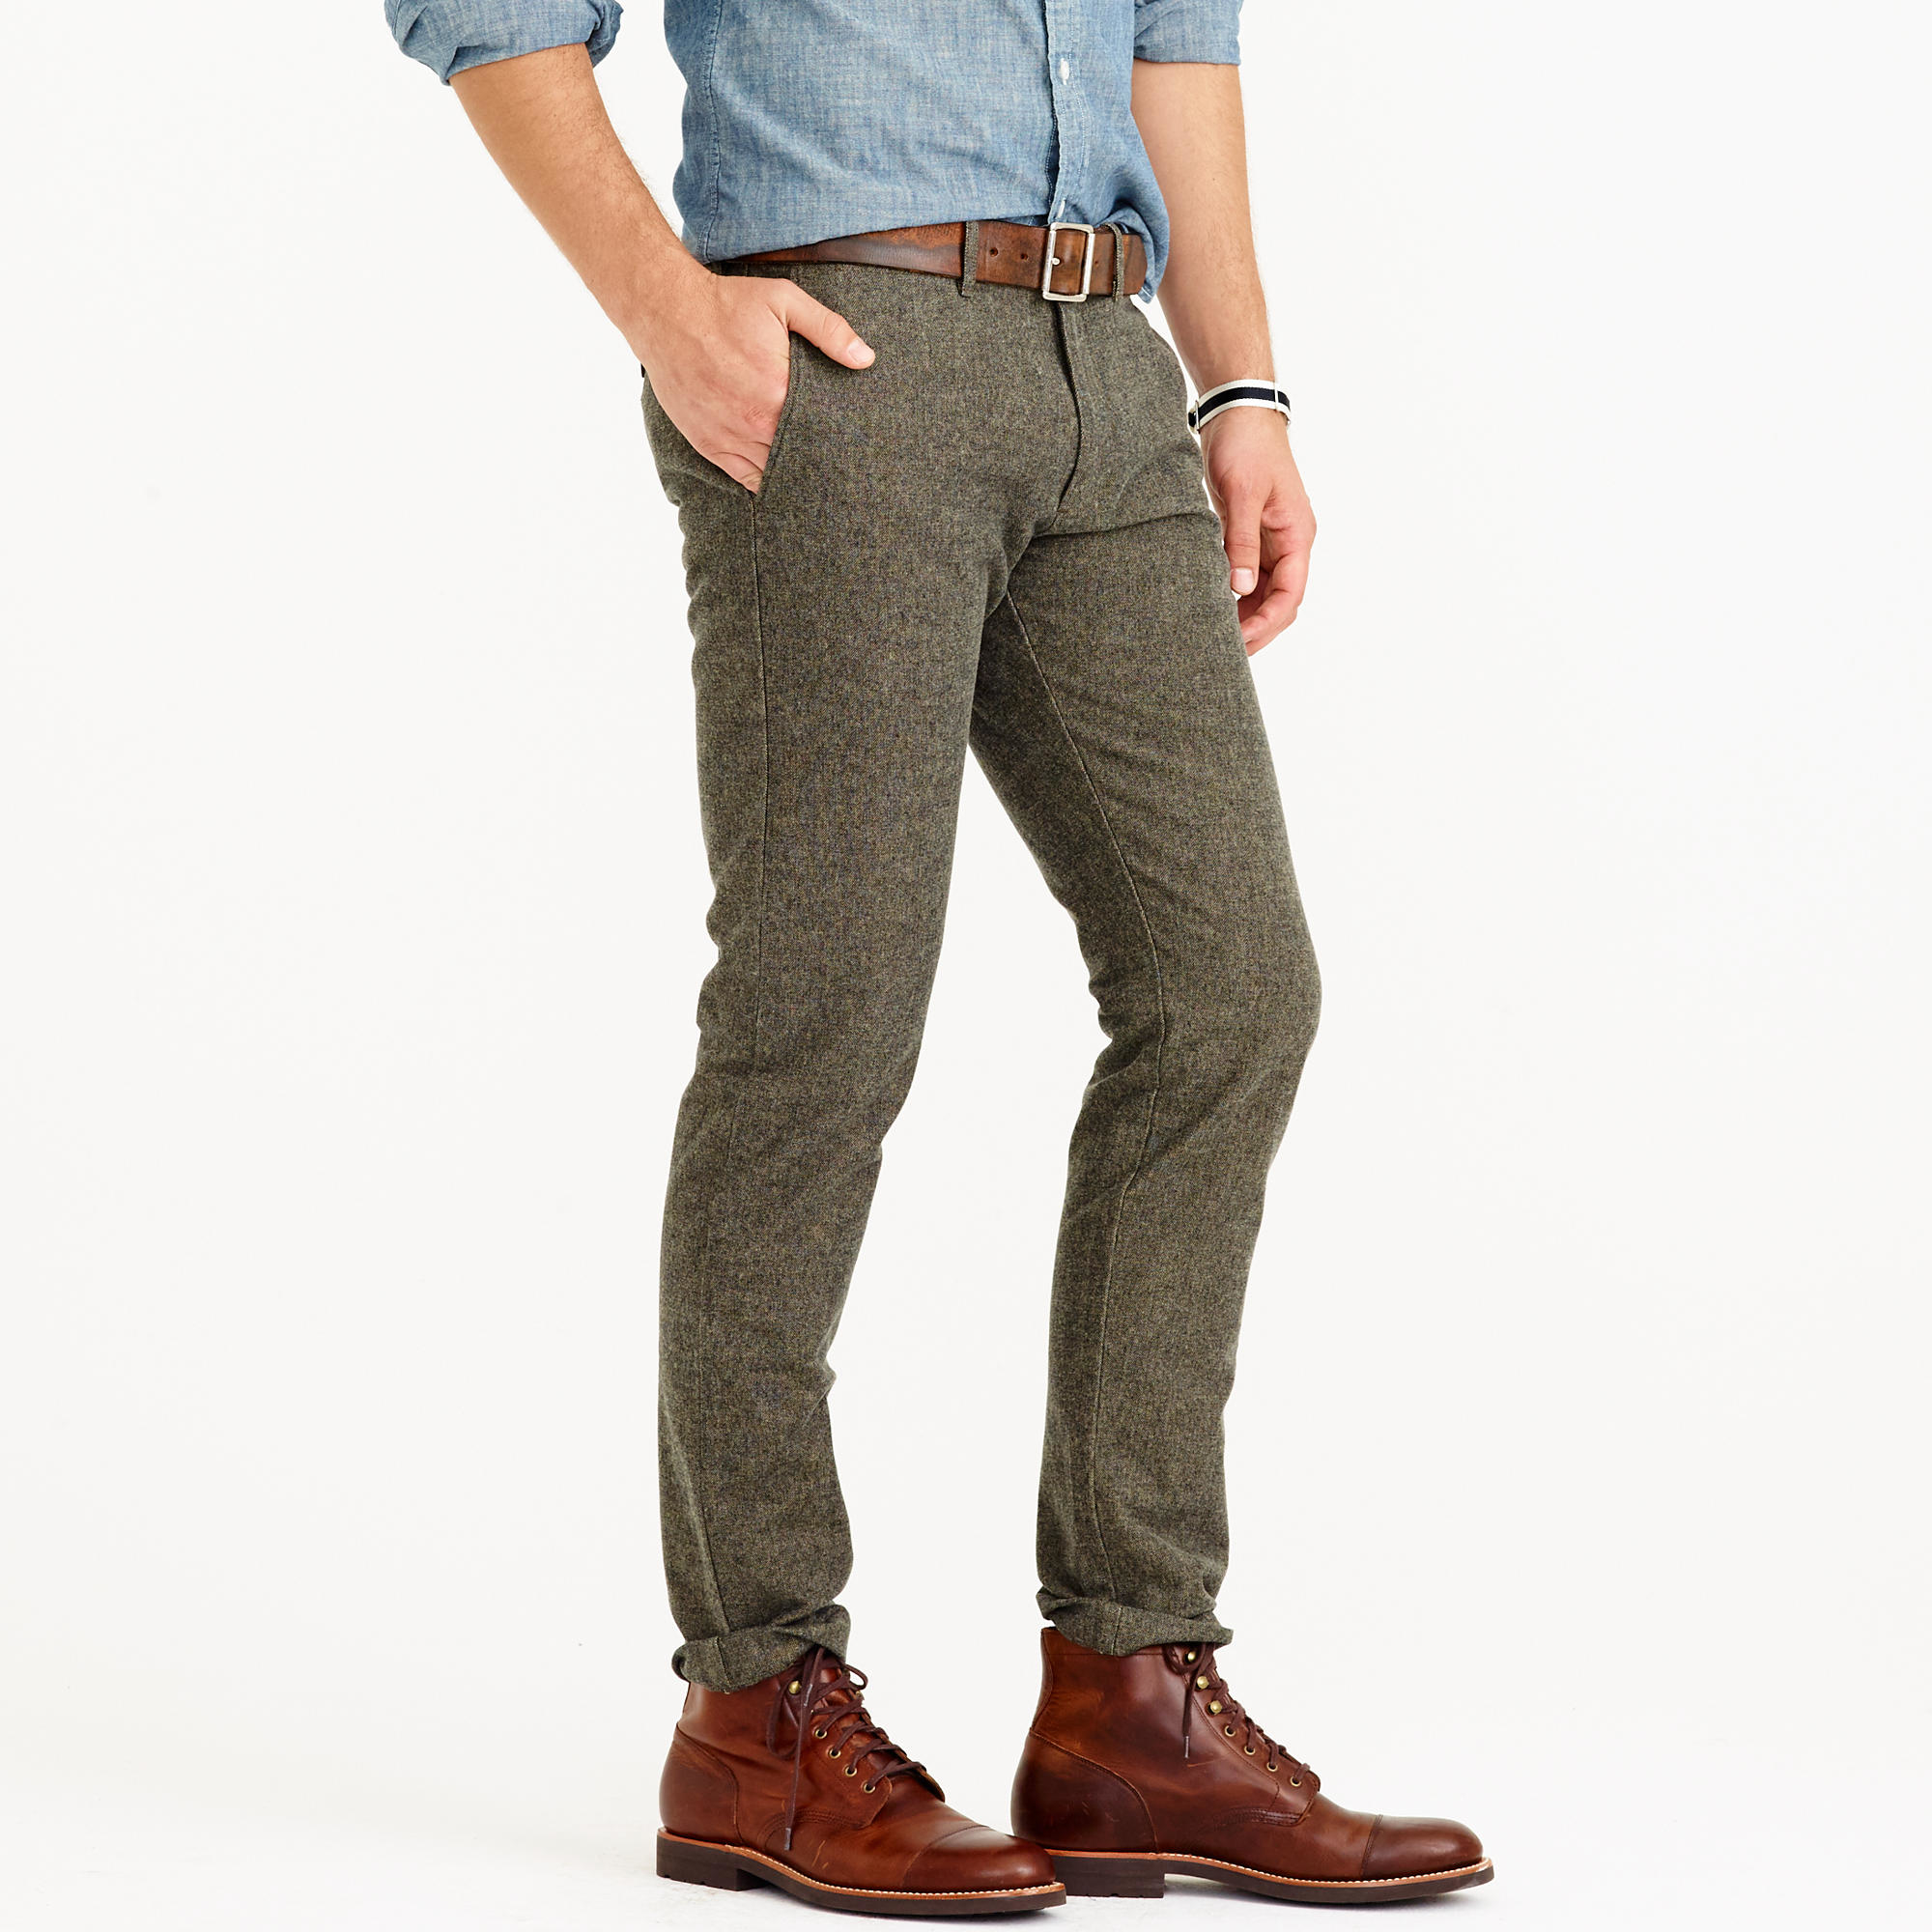 Finishline For Sale Latest Collections Cheap Price 484 Slim-fit Stretch-cotton Twill Chinos J.crew Free Shipping Clearance Get To Buy Cheap Online VSWQ8BHXly